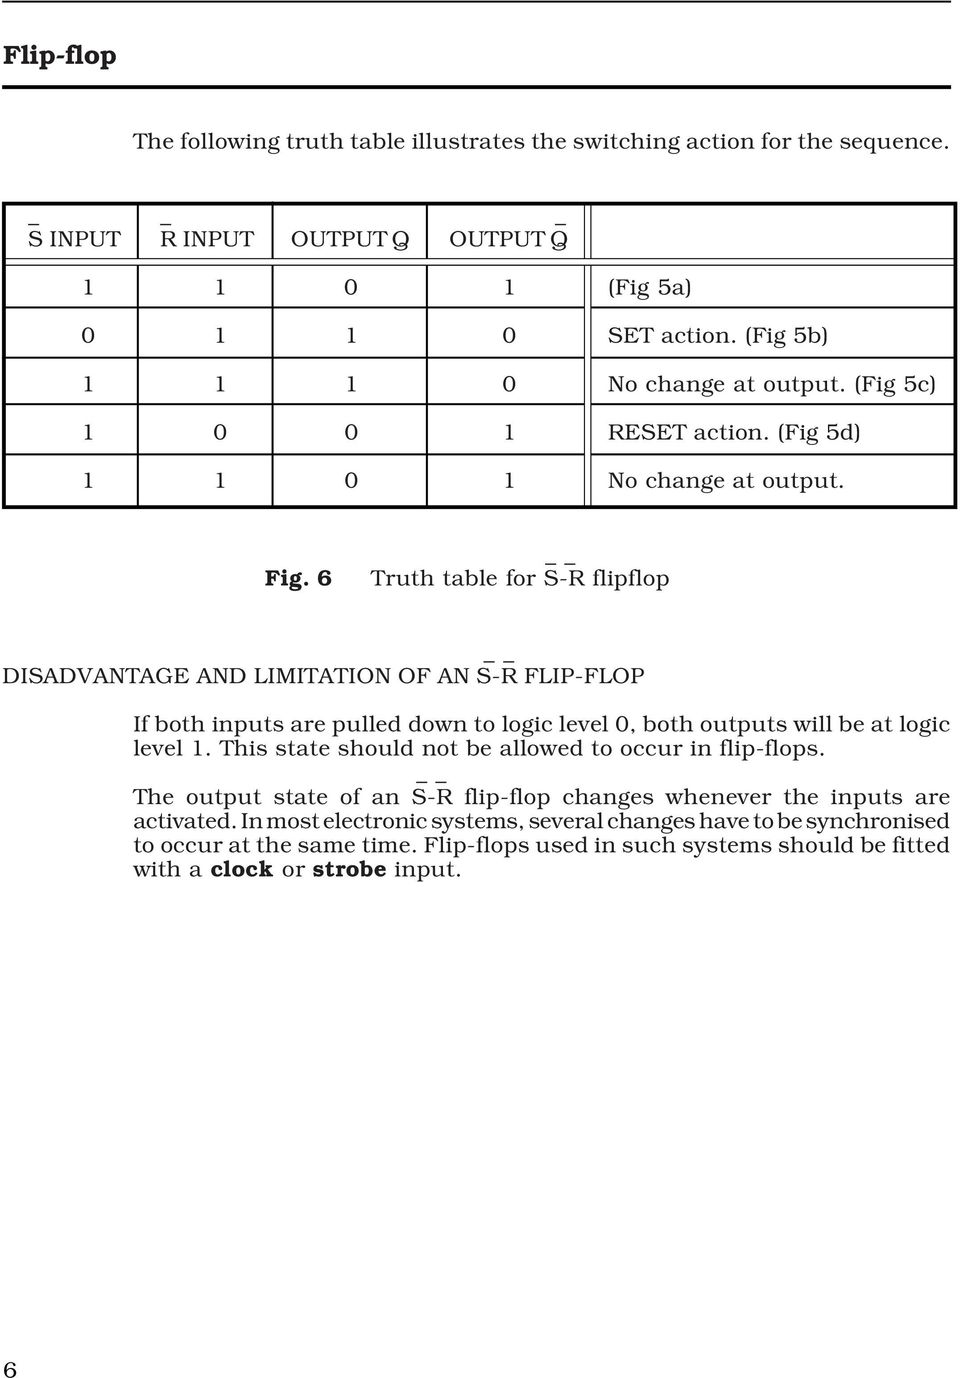 6 Truth table for S-R flipflop DISADVANTAGE AND LIMITATION OF AN S-R FLIP-FLOP If both inputs are pulled down to logic level, both outputs will be at logic level.